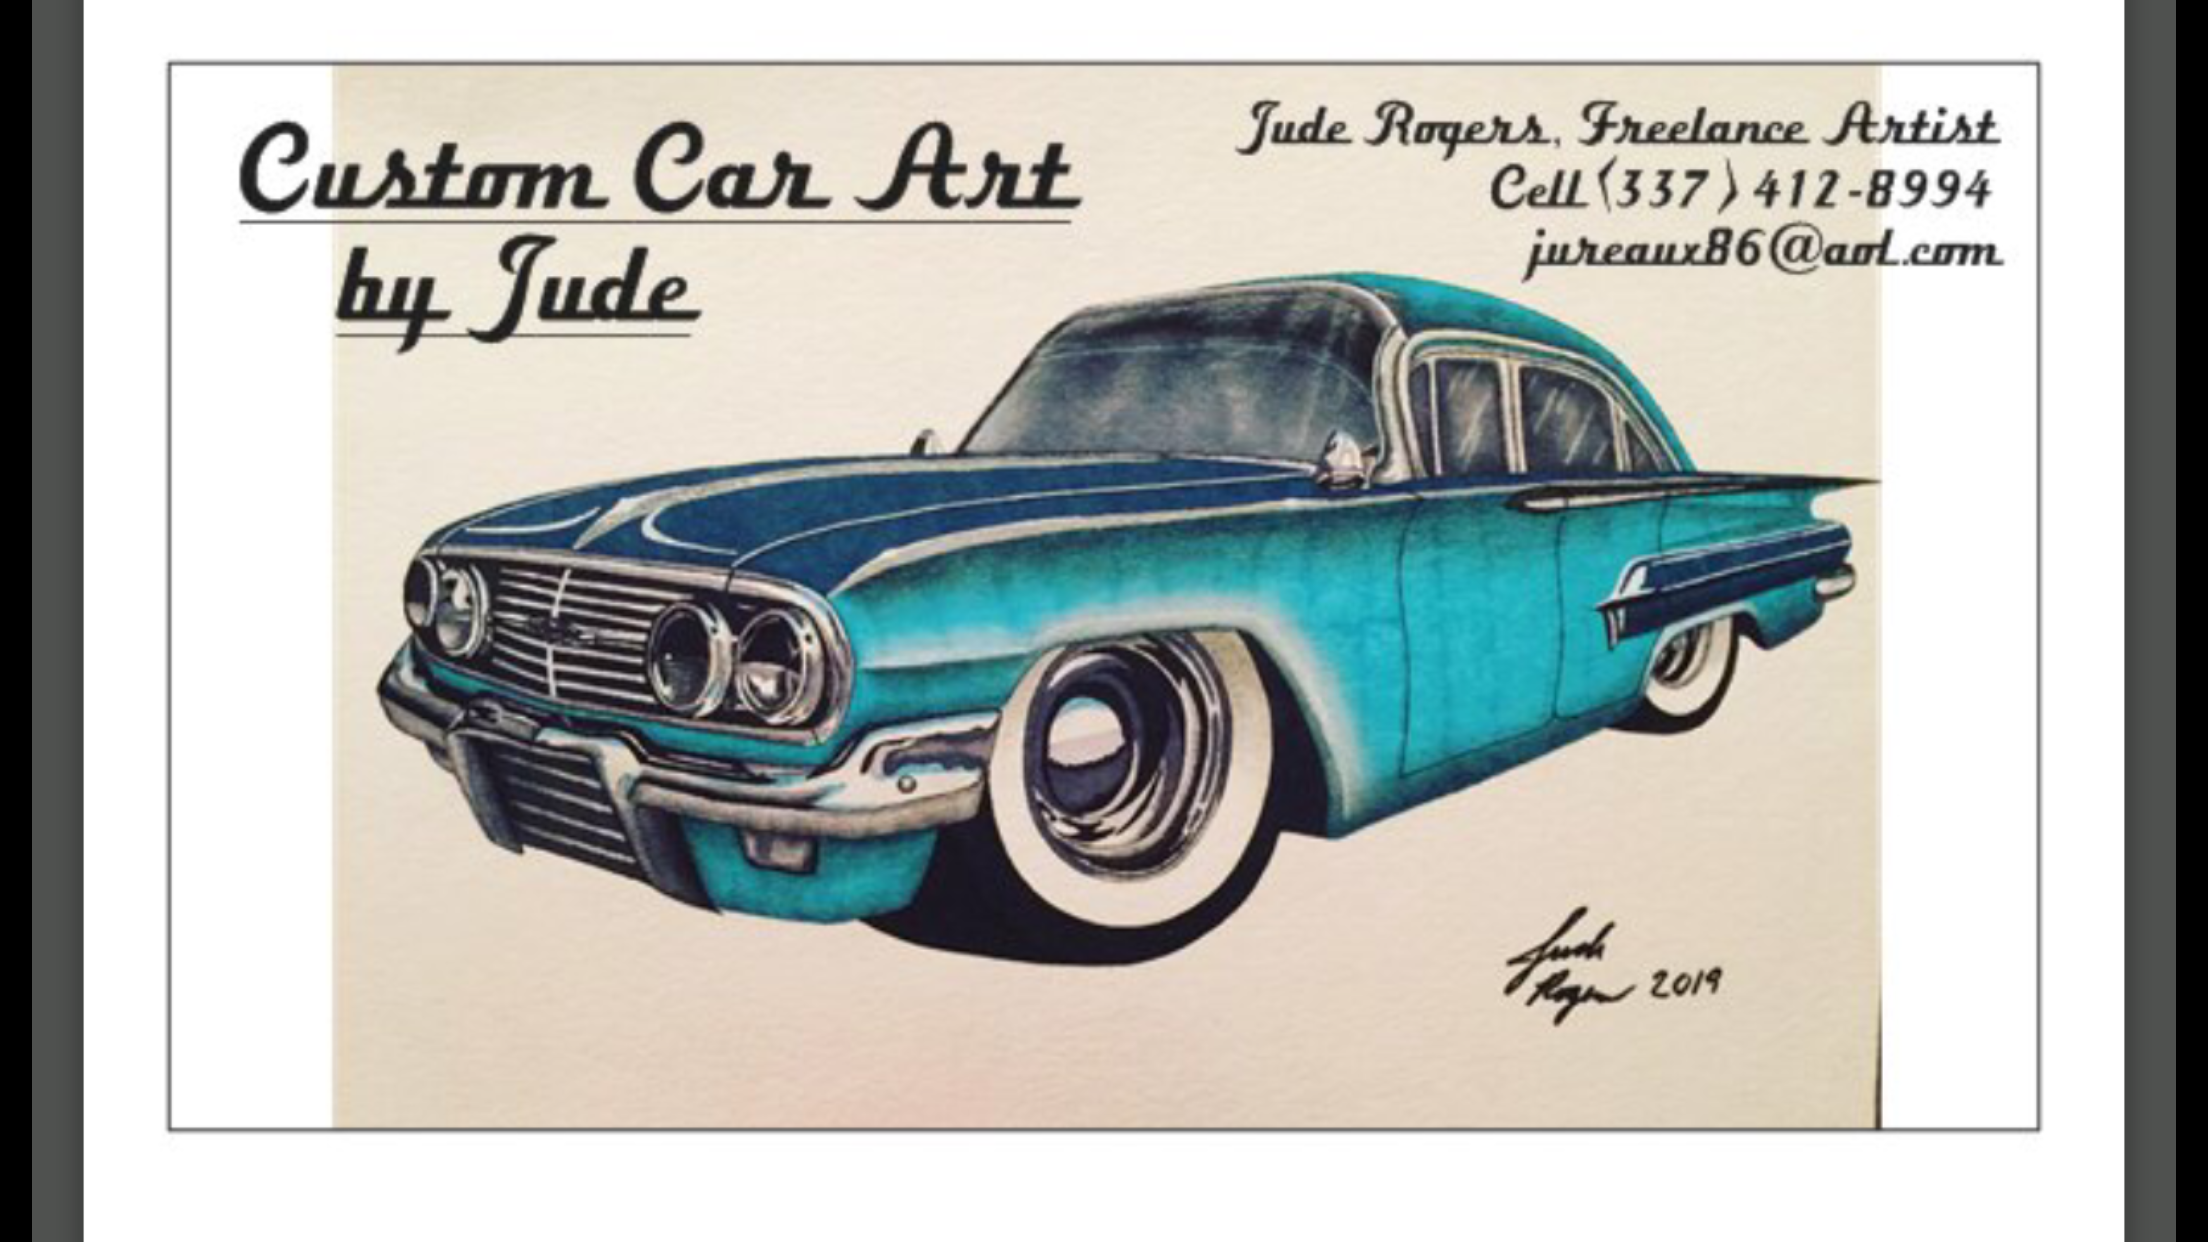 Car Drawings, I have since been married in 2013 and no longer have my sports car, but I do draw cars now...something I haven't done in years! Hope y'all enjoy! - 19195984